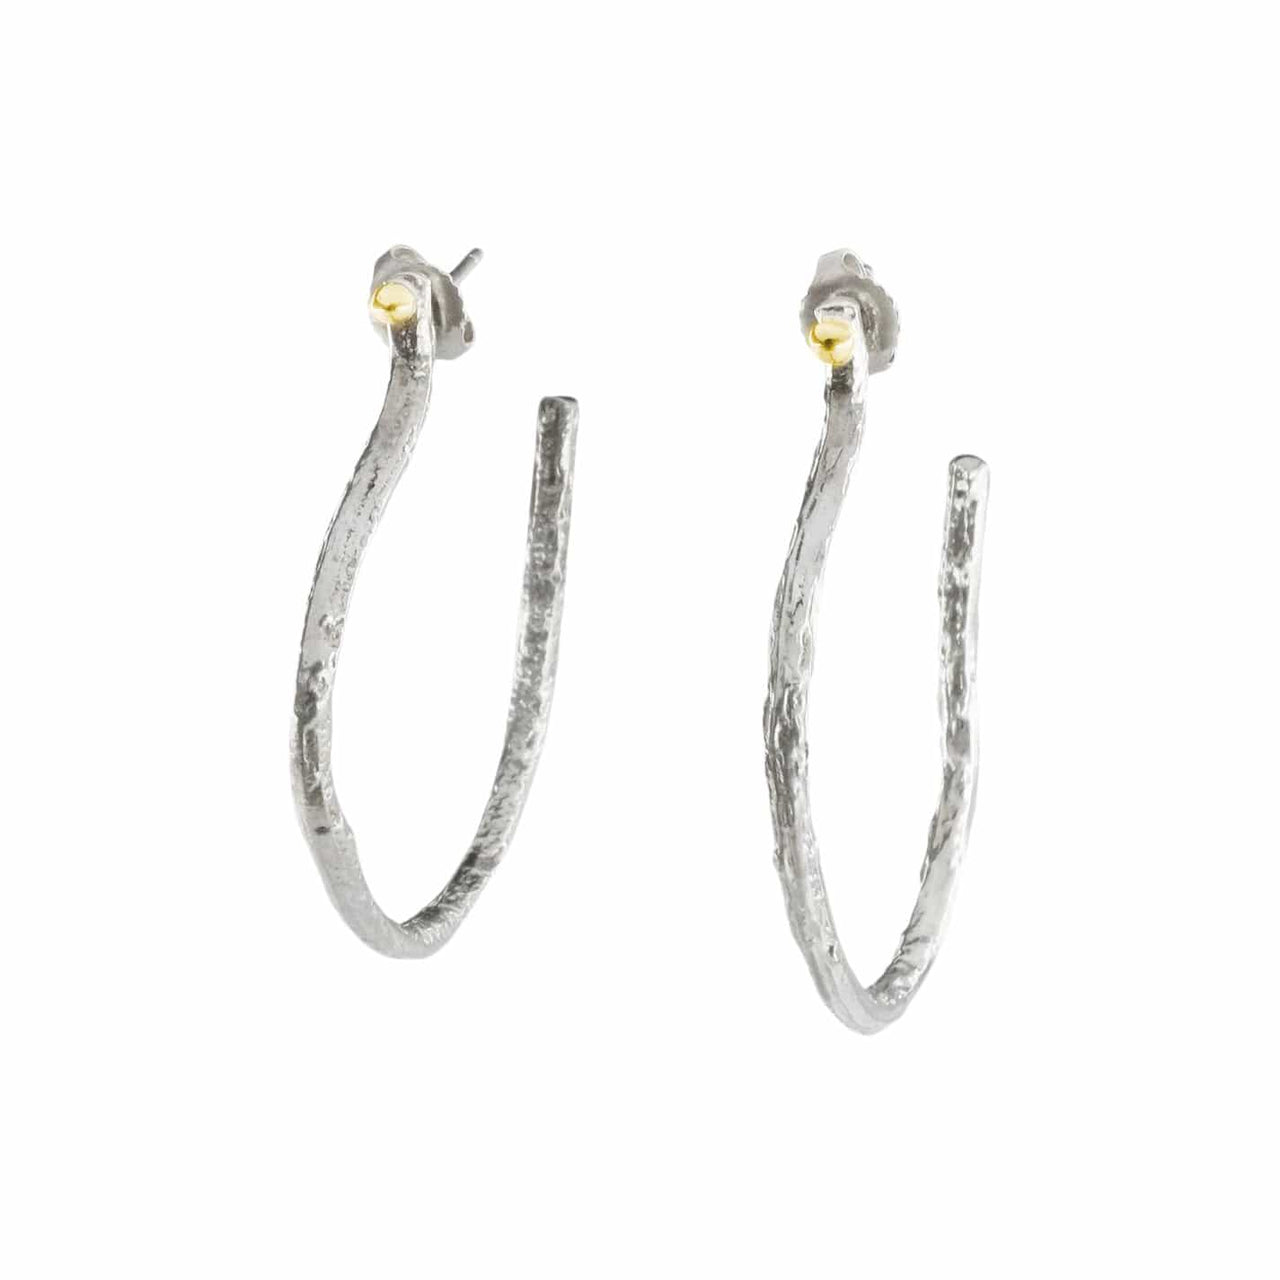 Gabriela Ortiz Earrings Fusion Junction Hoop Earrings